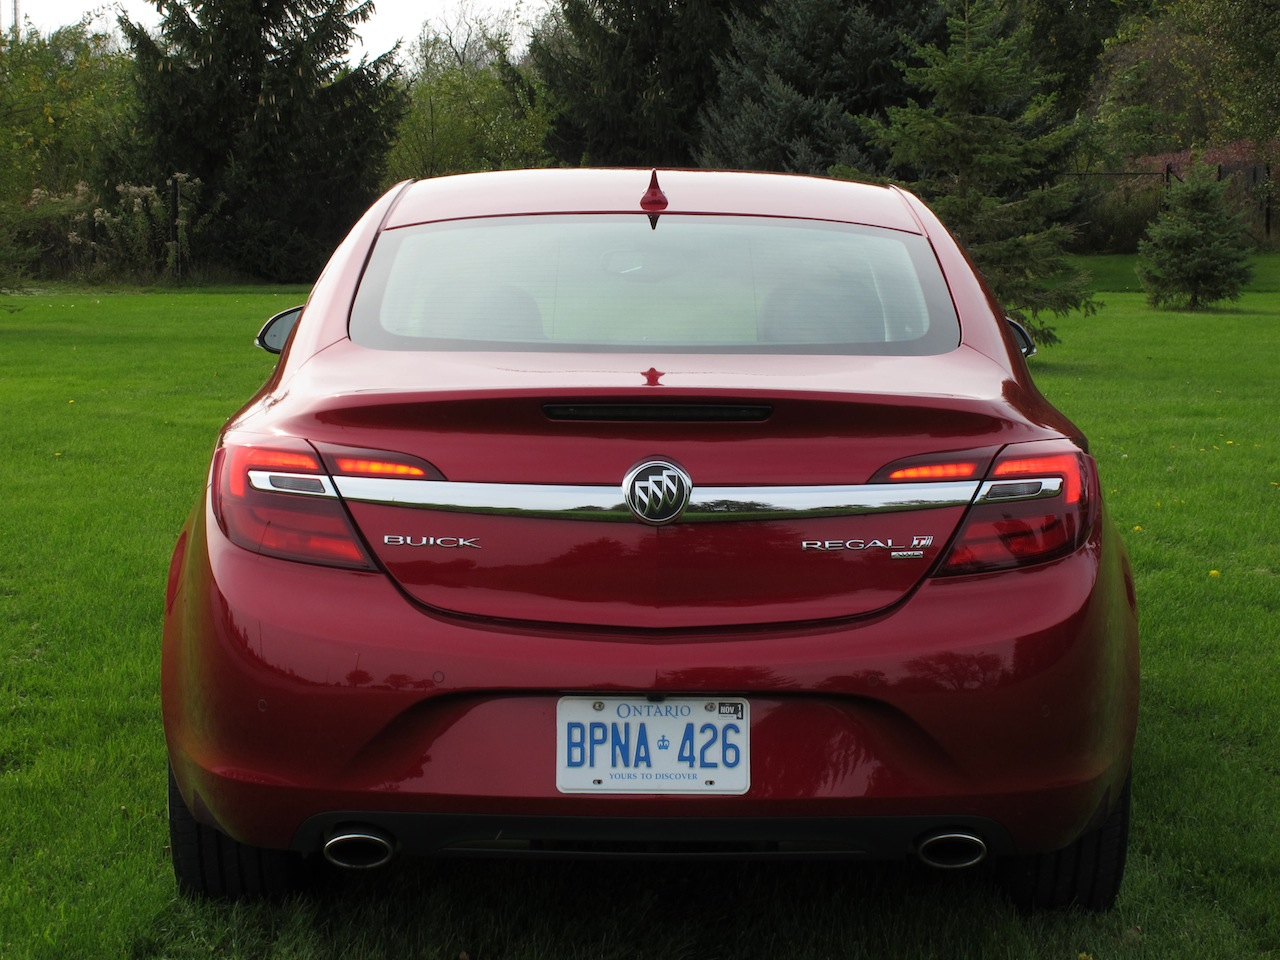 2014 buick regal sedan review ratings edmunds 2016 car release date. Cars Review. Best American Auto & Cars Review